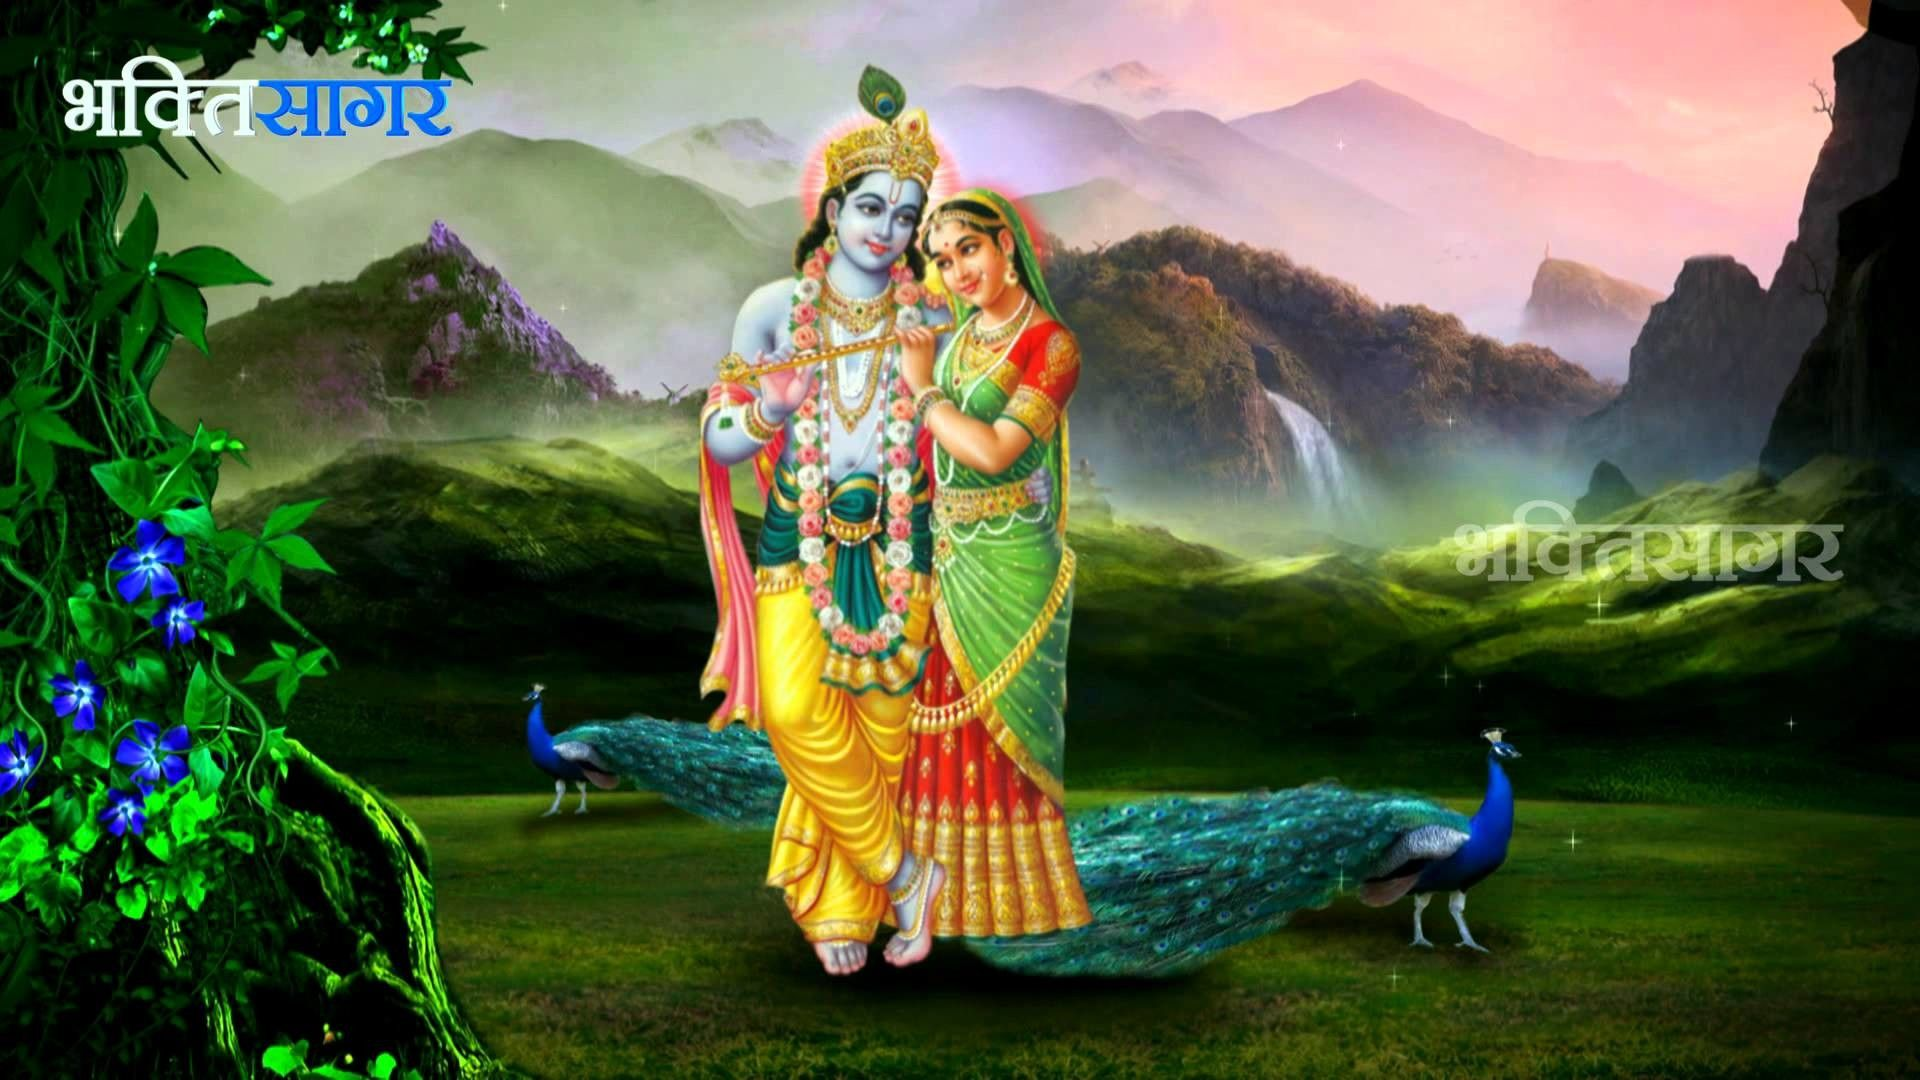 Radha Krishna Hd Wallpapers 1920x1080 For Iphone 7 Lord Krishna Hd Wallpaper Janmashtami Wallpapers Krishna Wallpaper